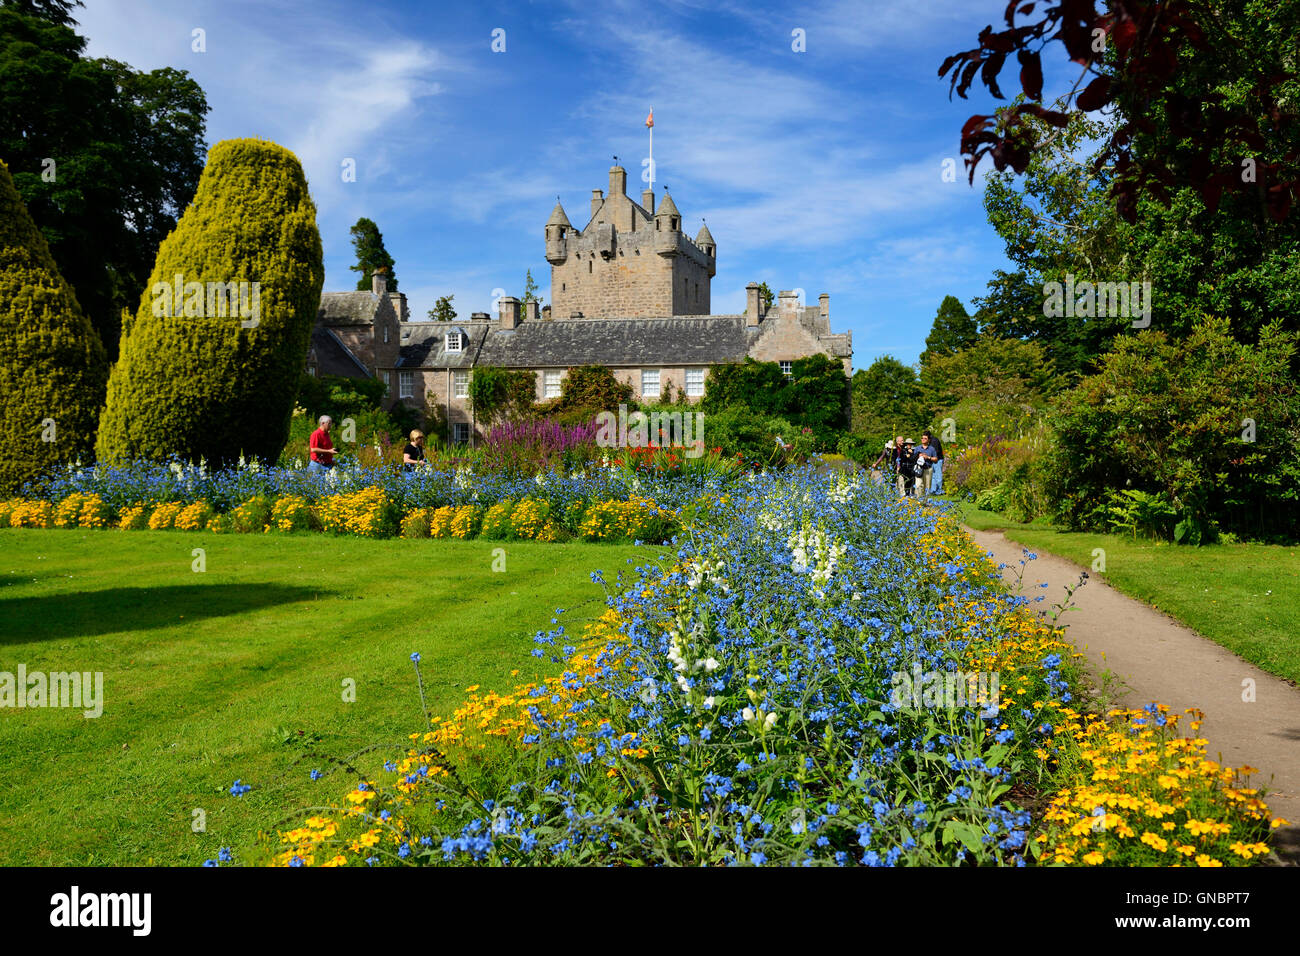 Flower garden at Cawdor Castle near Nairn in Inverness shire, Scotland - Stock Image